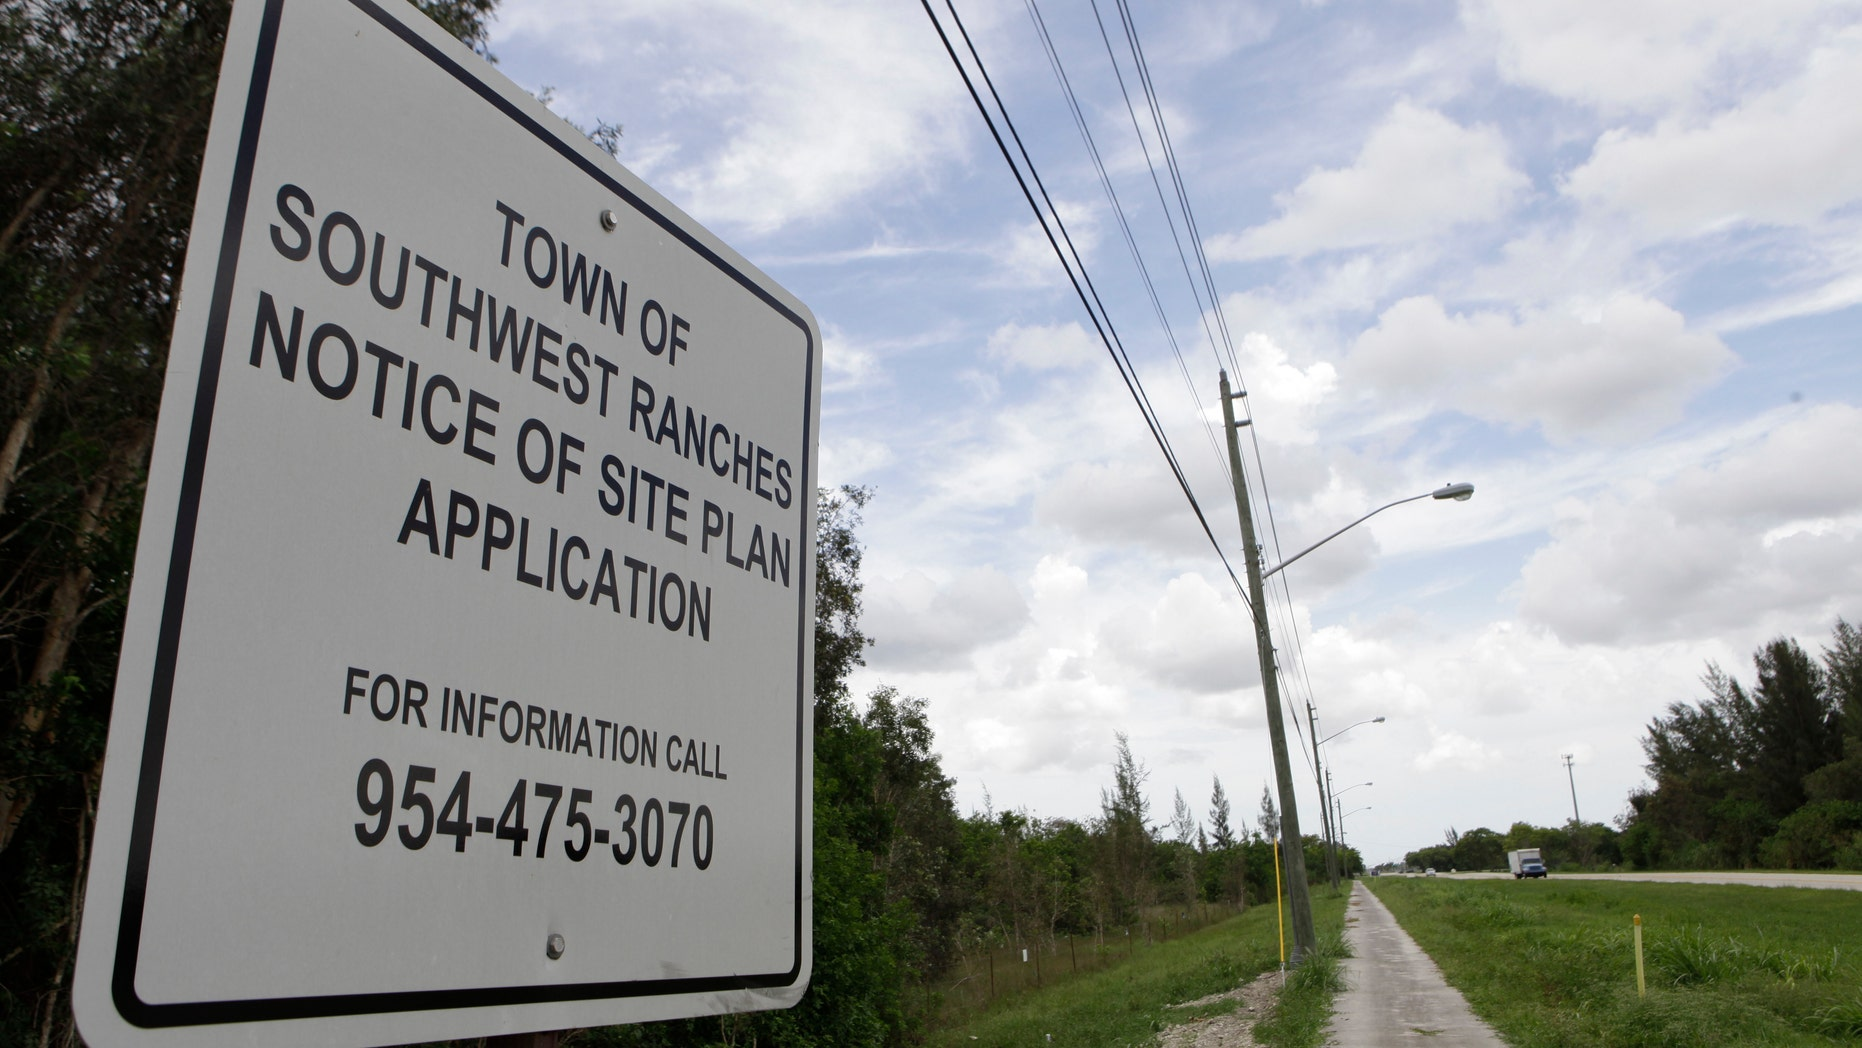 In this photo taken Tuesday, July 26, 2011, a sign is posted at the site for a proposed detention center to be built in Southwest Ranches, Fla.  Town leaders in this upscale rural enclave have plans to build a 1,500-bed detention center facility for U.S. Immigration and Customs Enforcement. A growing group of residents from Southwest Ranches and neighboring cities are seeking to halt the effort. (AP Photo/Lynne Sladky)